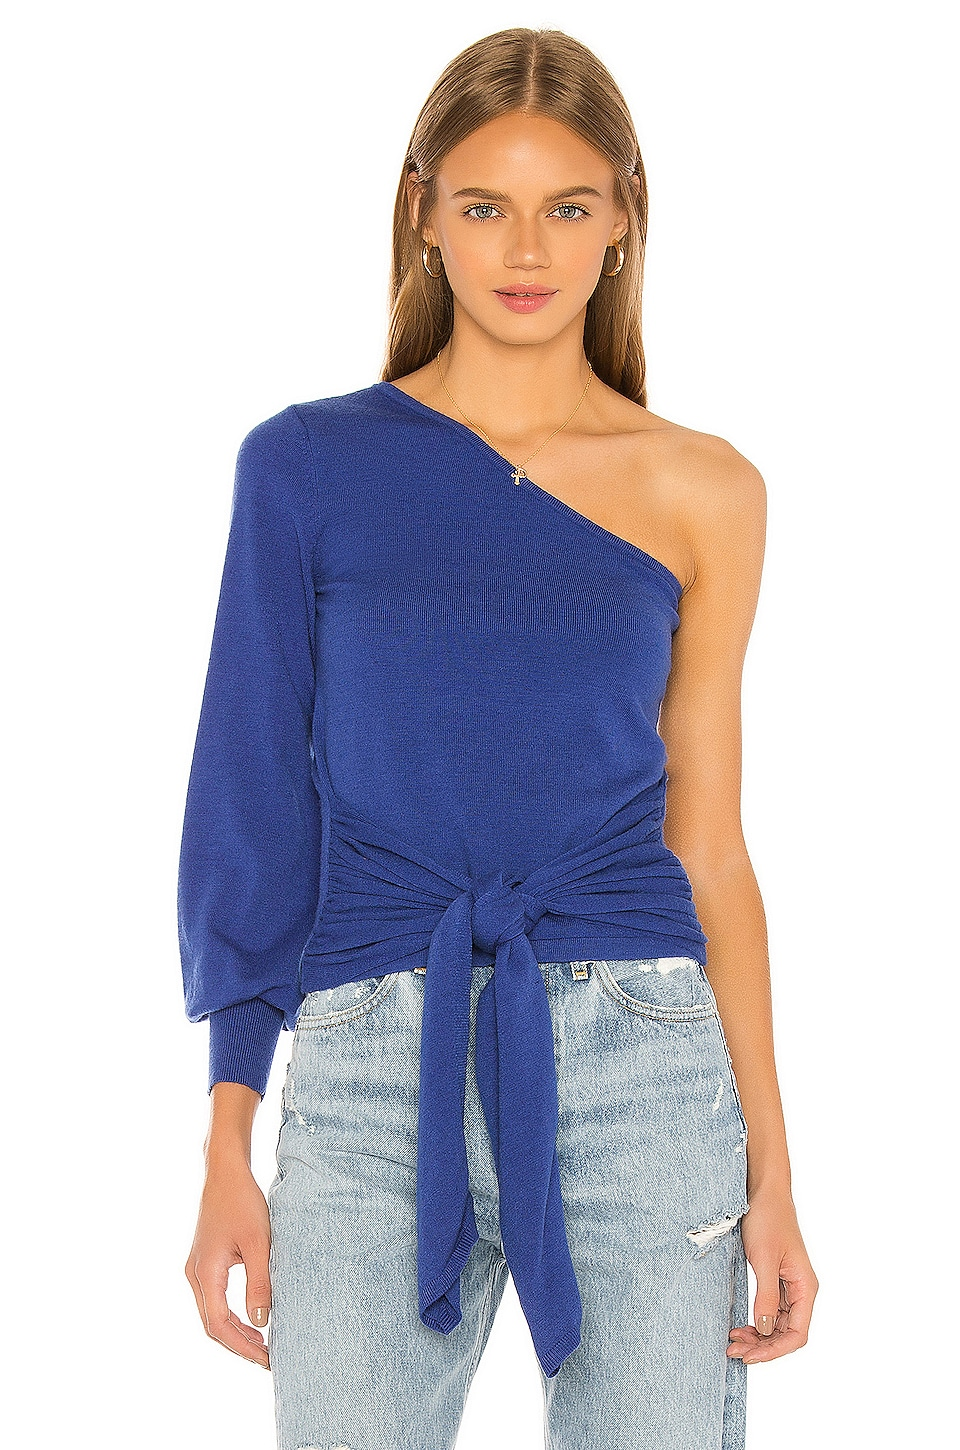 House of Harlow 1960 X REVOLVE Reyna Sweater in Bright Blue